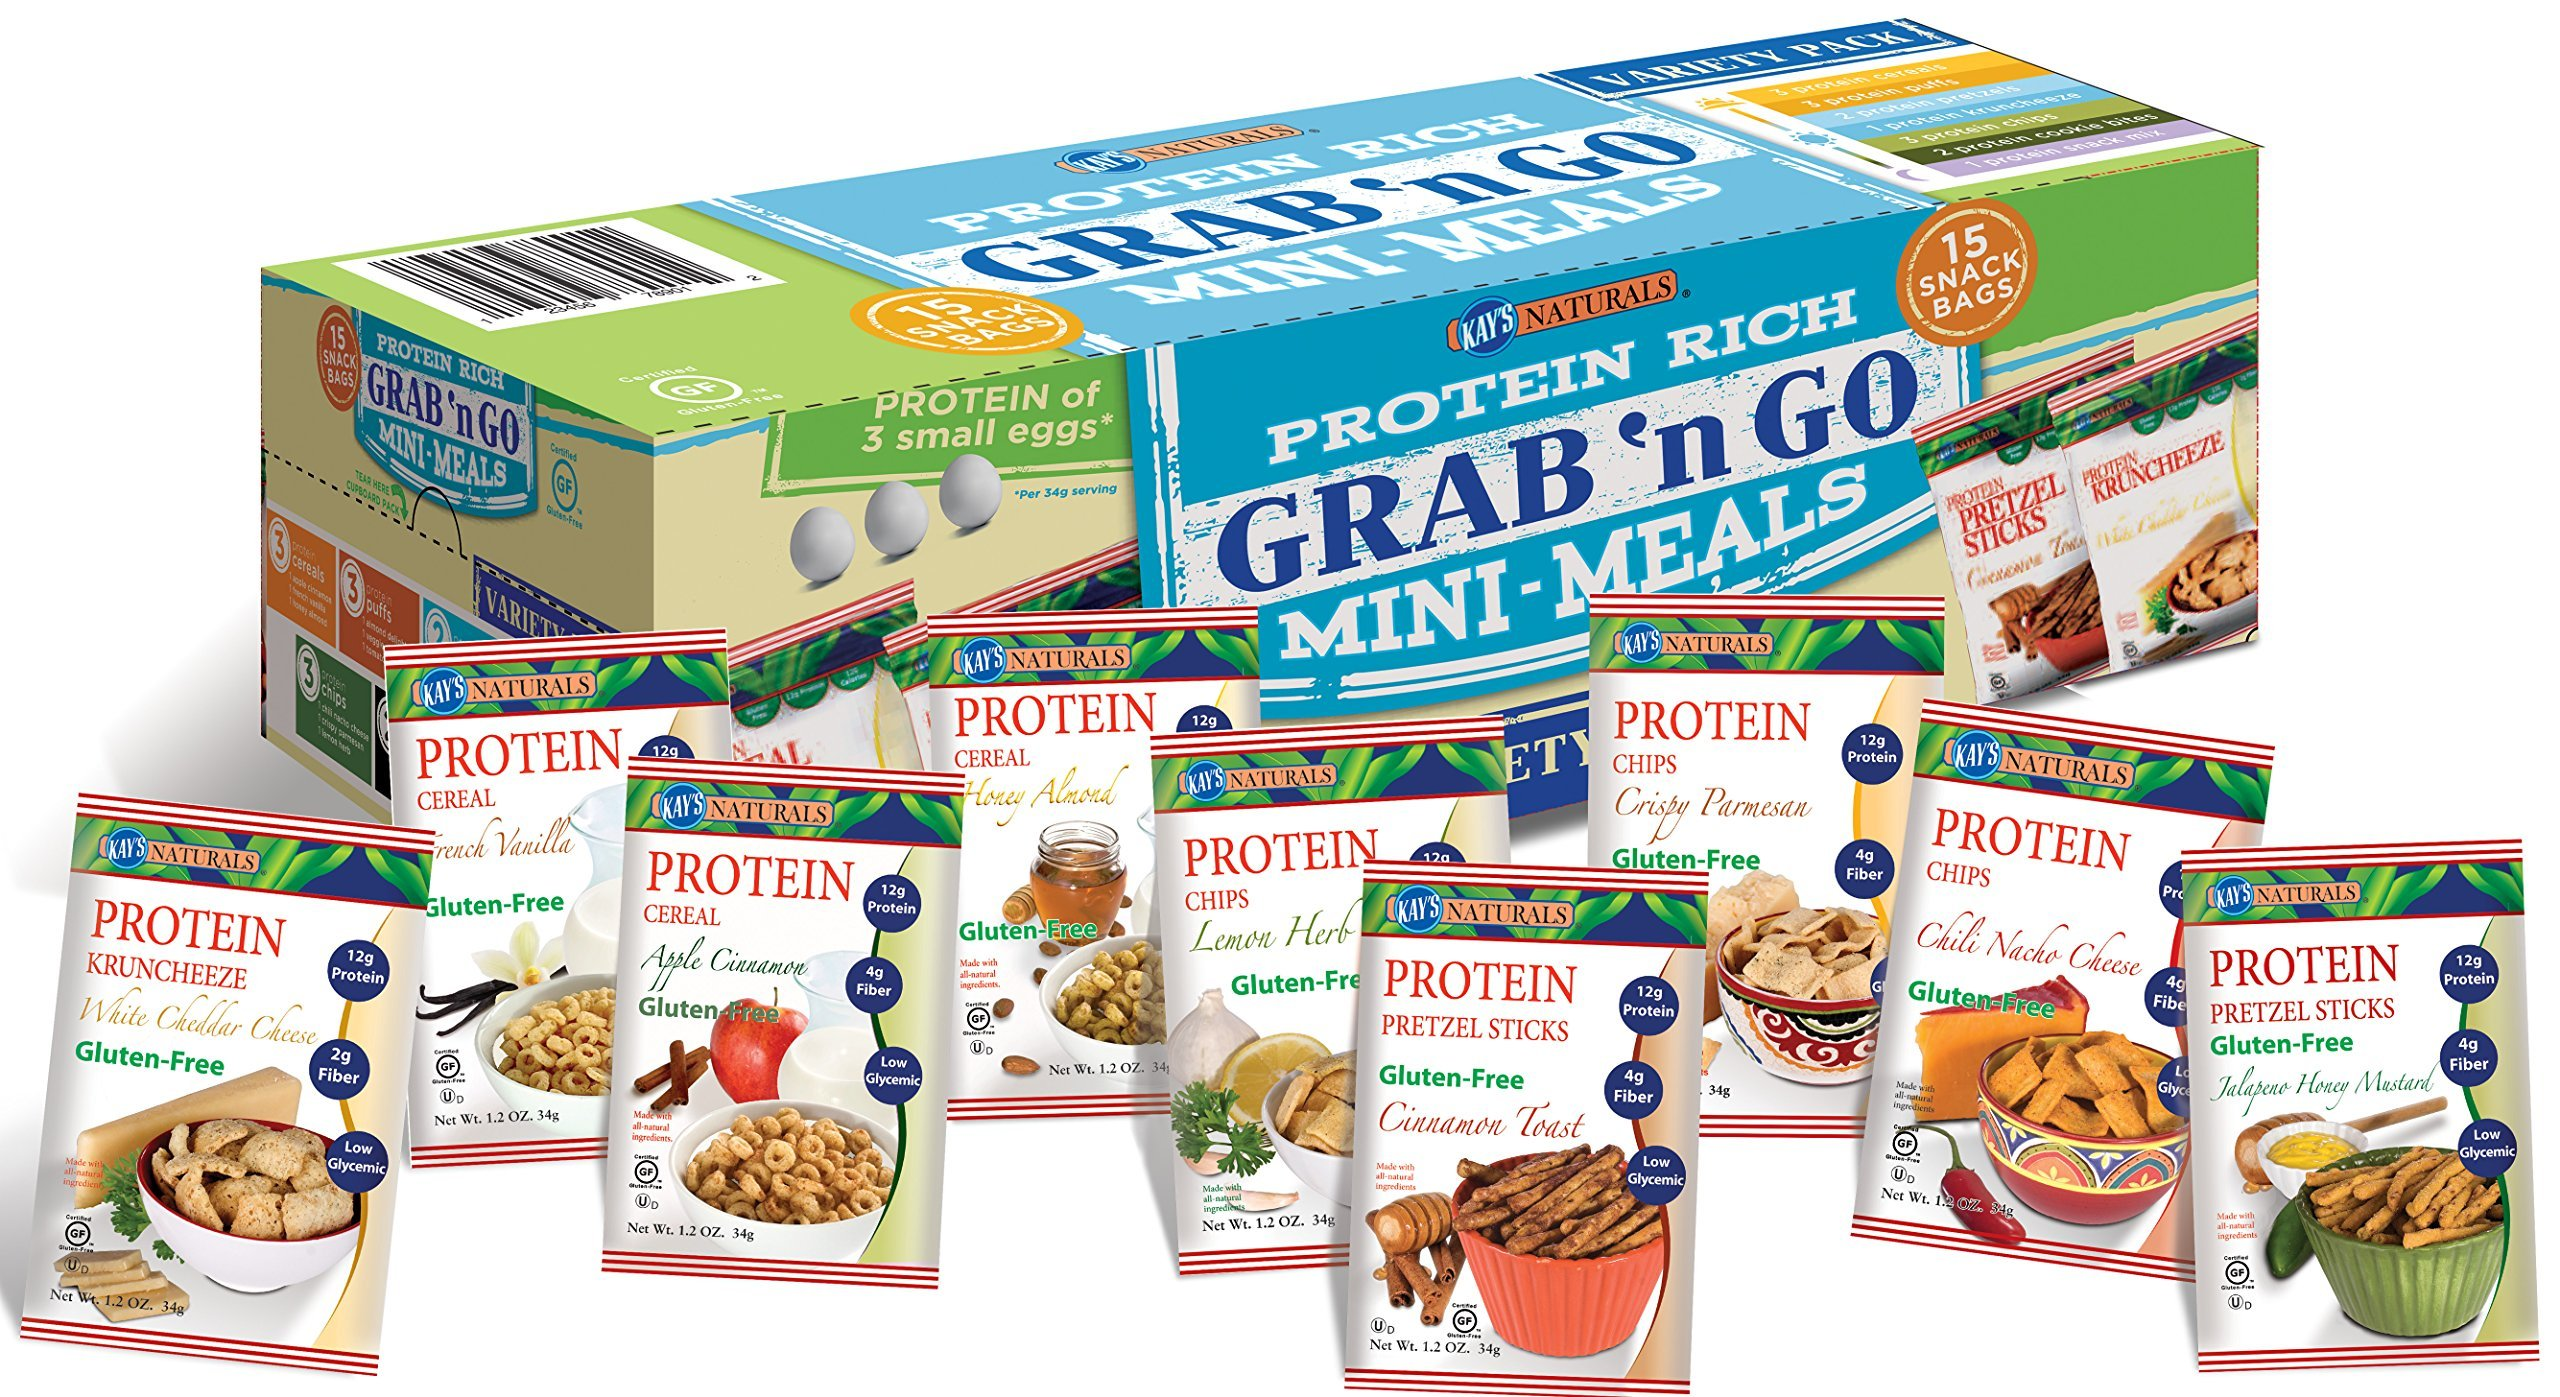 Kay's Naturals Protein Grab n' Go Mini Meals, Variety Pack, Gluten-Free, Low Carbs, Low Fat, Diabetes Friendly All Natural Flavorings, (Pack of 15) by Greaton,